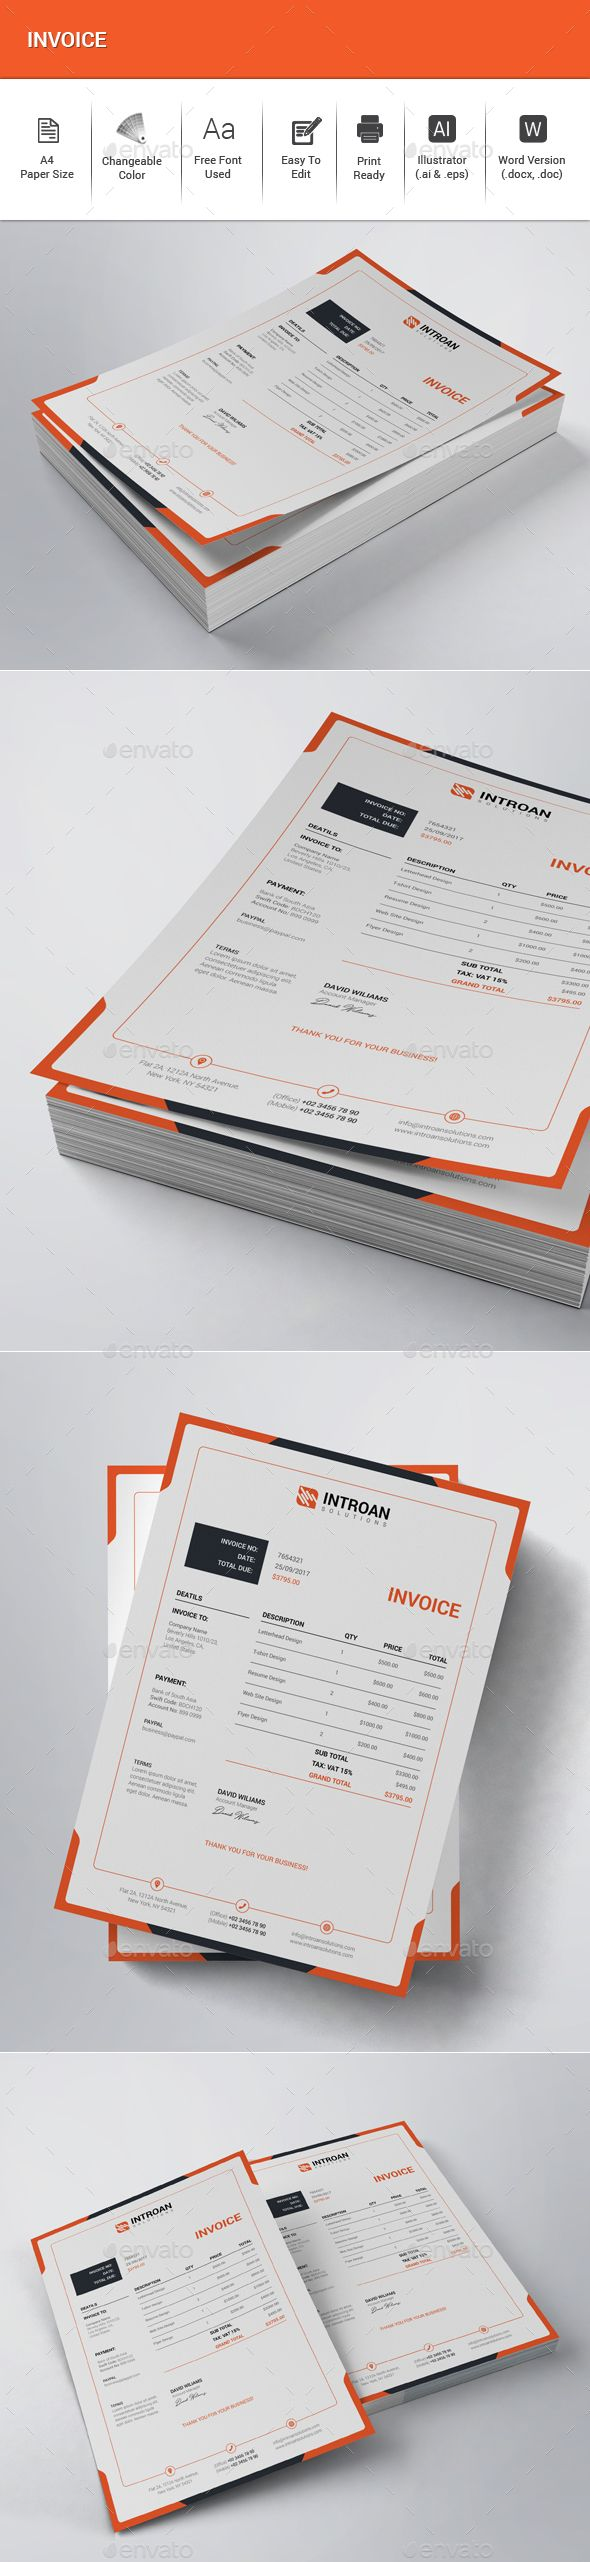 Invoice — Vector EPS #payment #orange • Available here → https://graphicriver.net/item/invoice/20728512?ref=pxcr